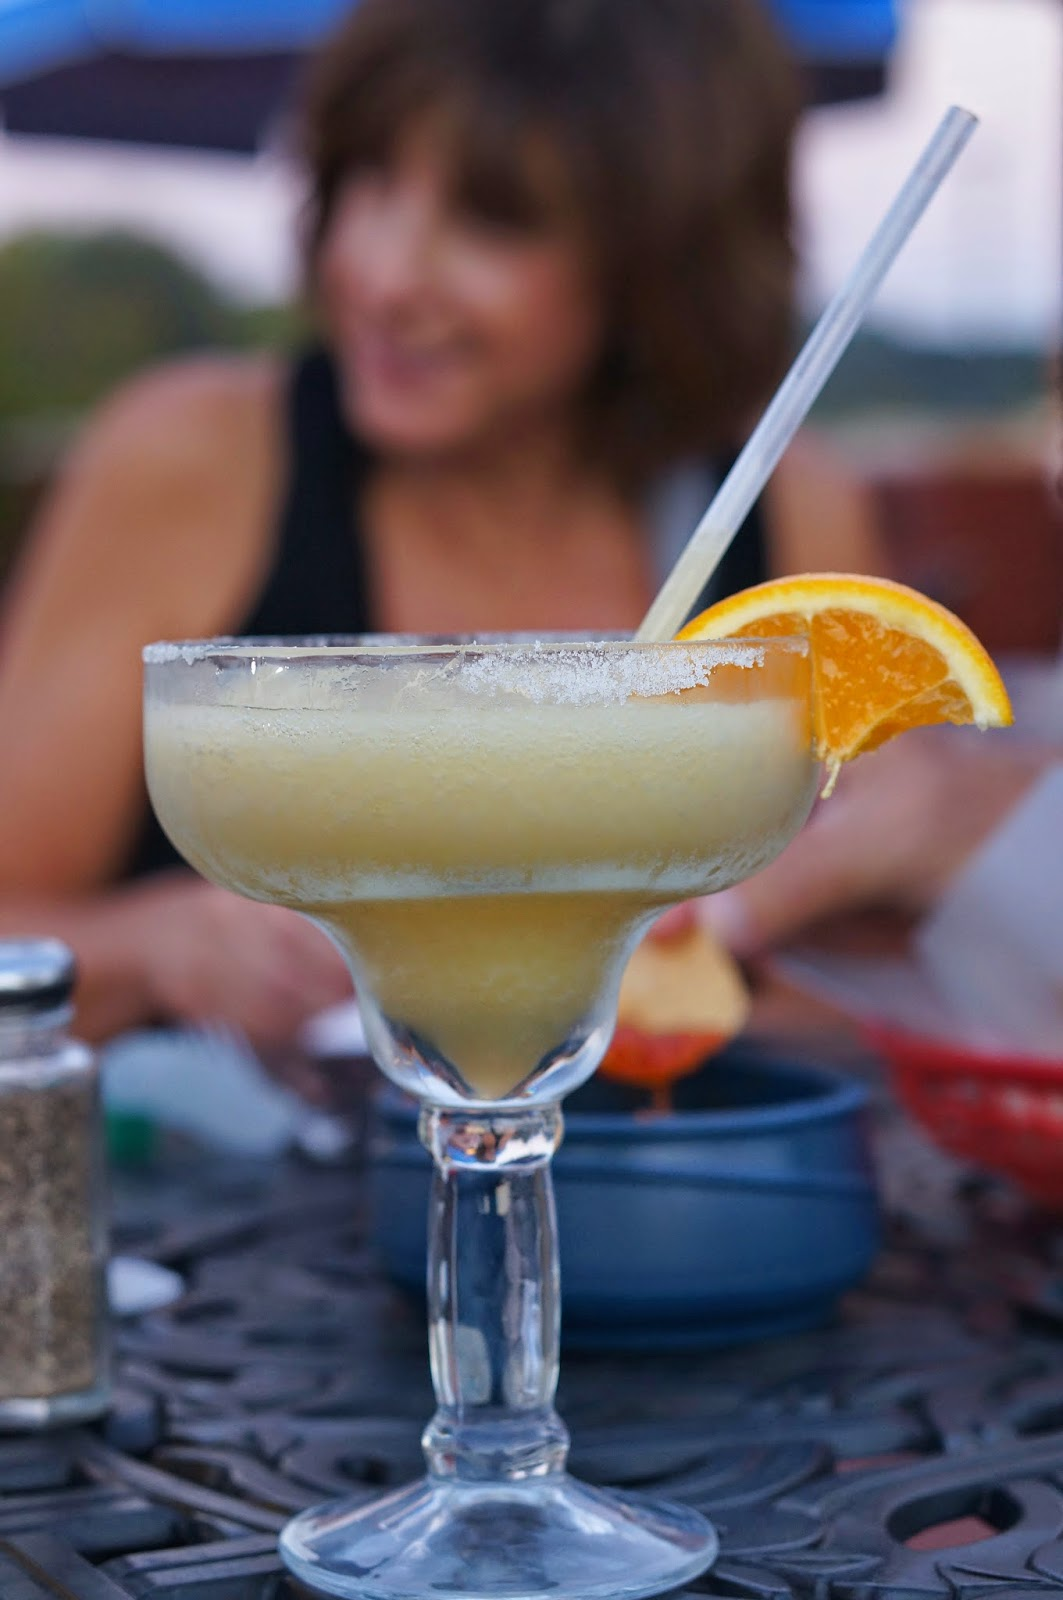 The Chain Gang,Village of Concord,Knoxville Tn,Concord Historic District,Frozen Margarita,Fajitas, Azul Tequila Mexican Grill Knoxville TN,